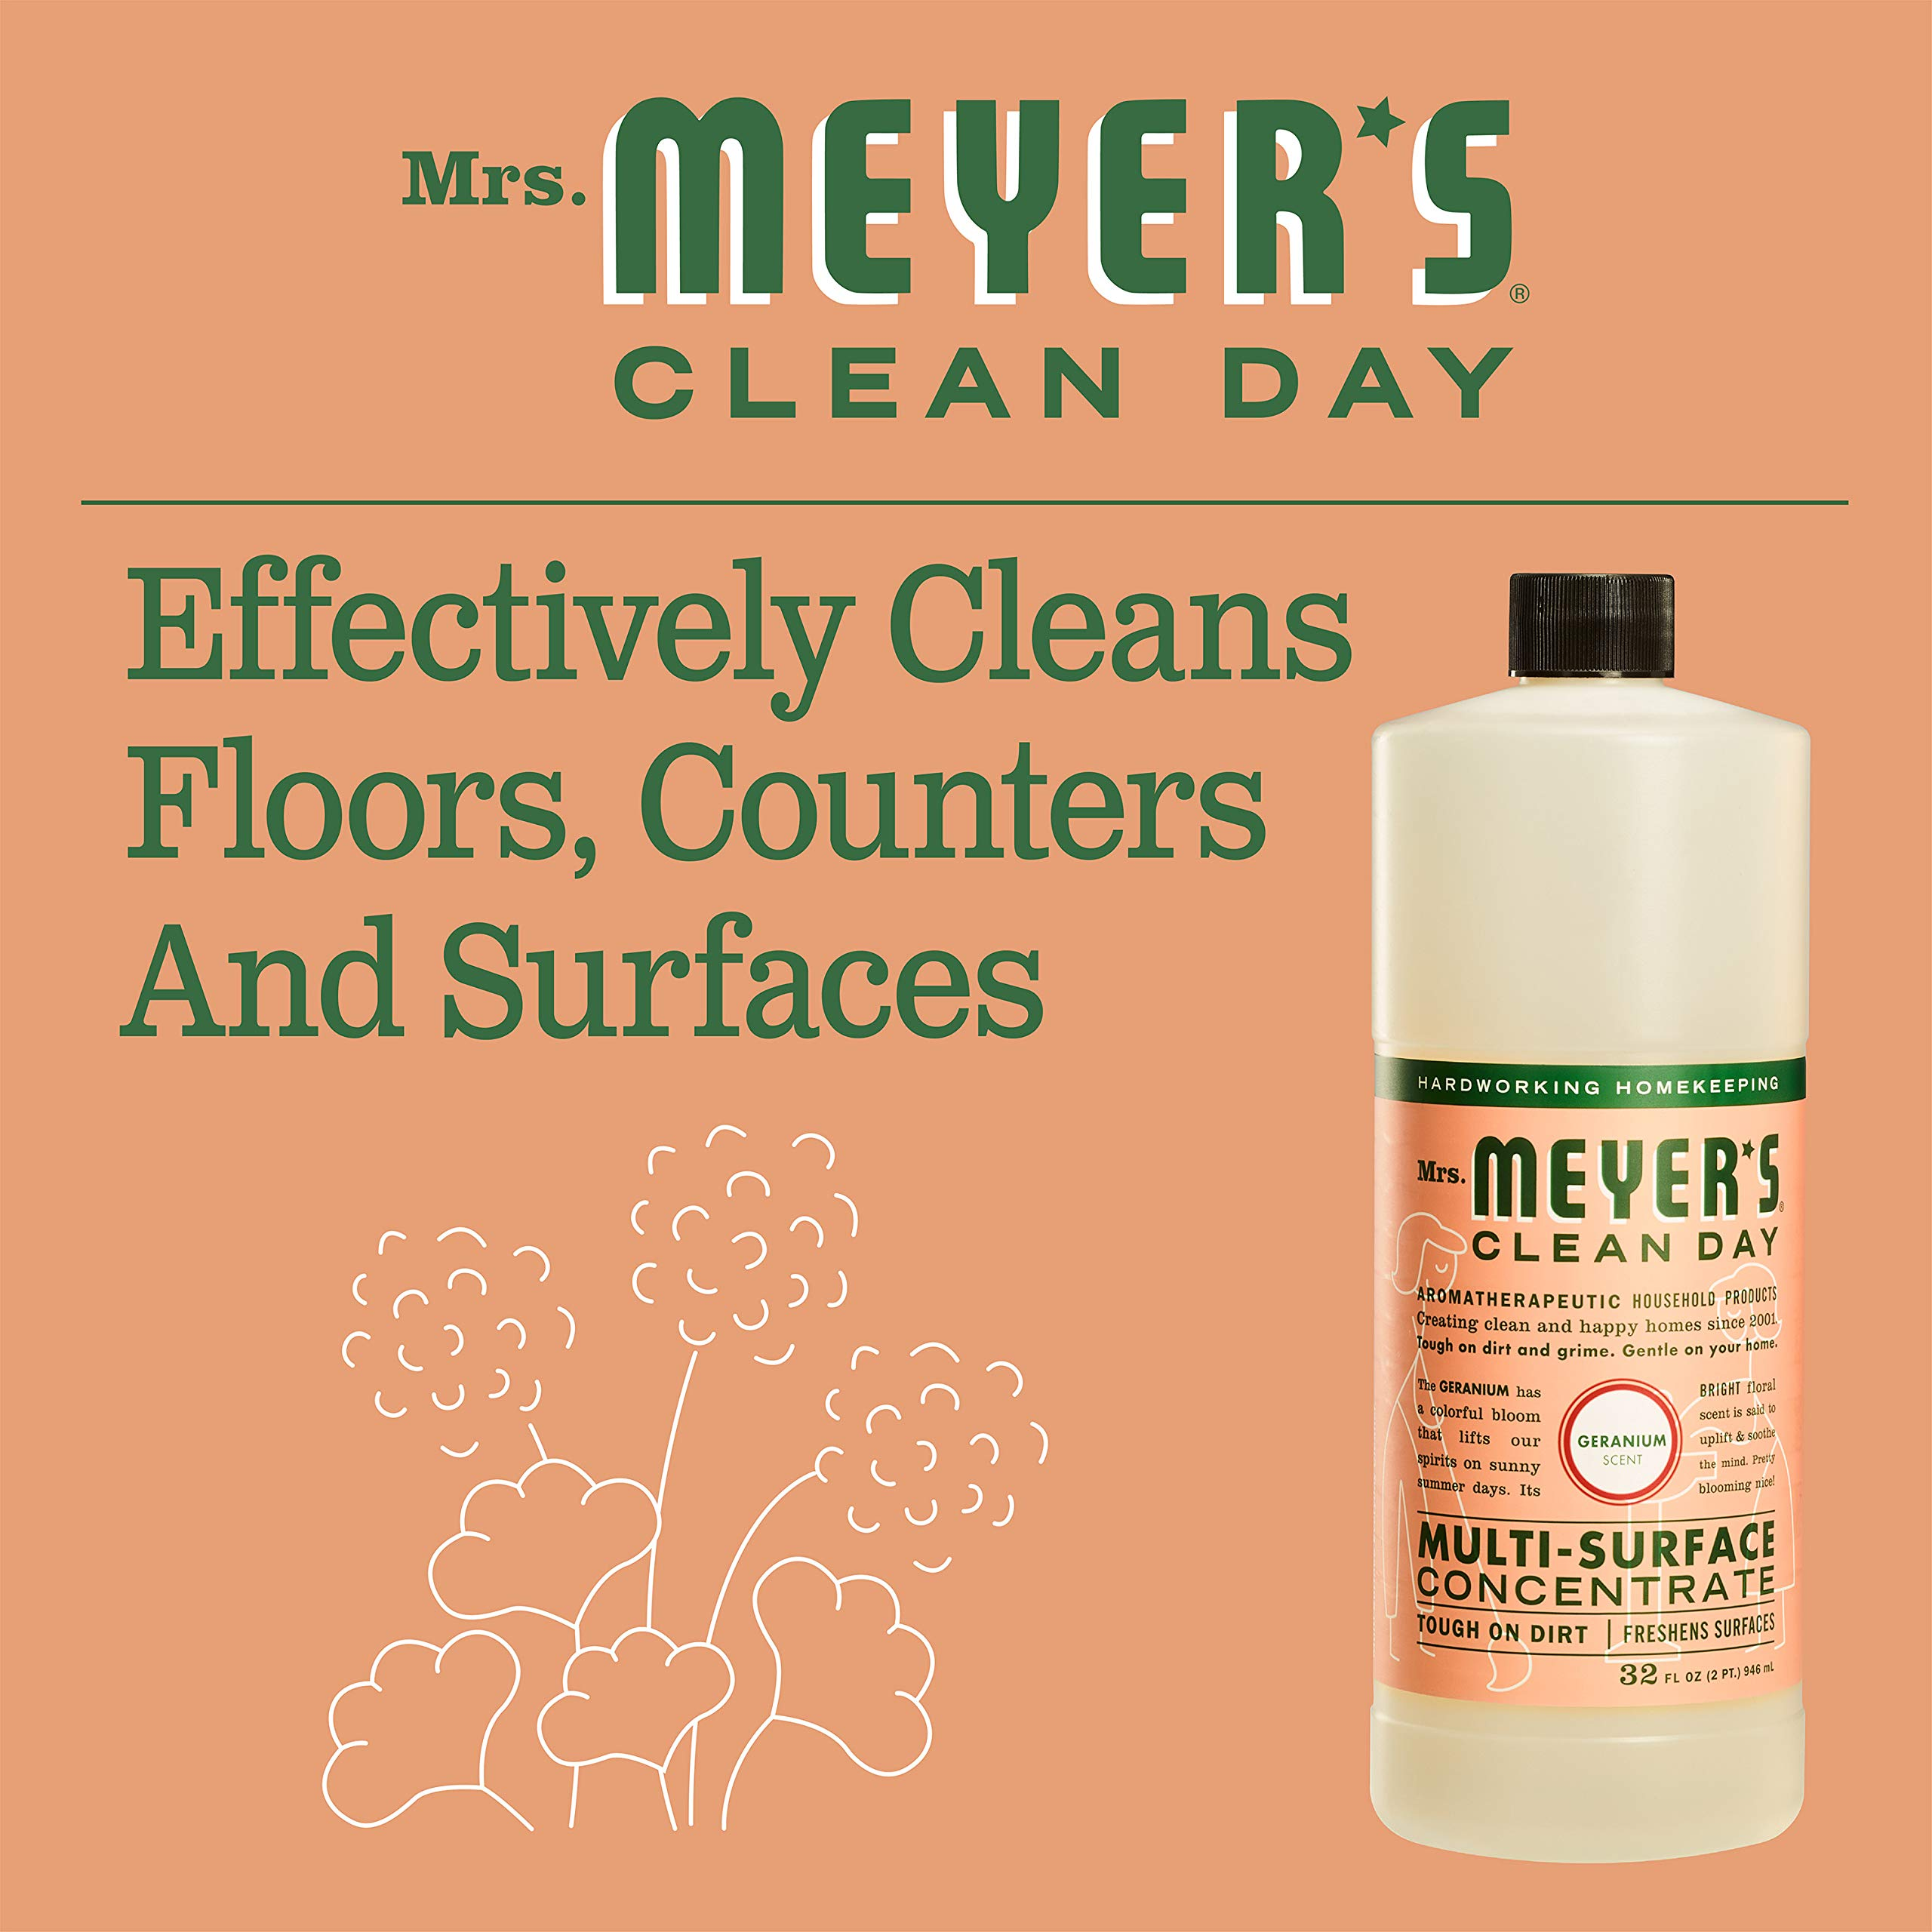 Mrs. Meyer's Clean Day Multi-Surface Concentrate, Geranium, 32 fl oz, 2 ct by Mrs. Meyer's Clean Day (Image #3)